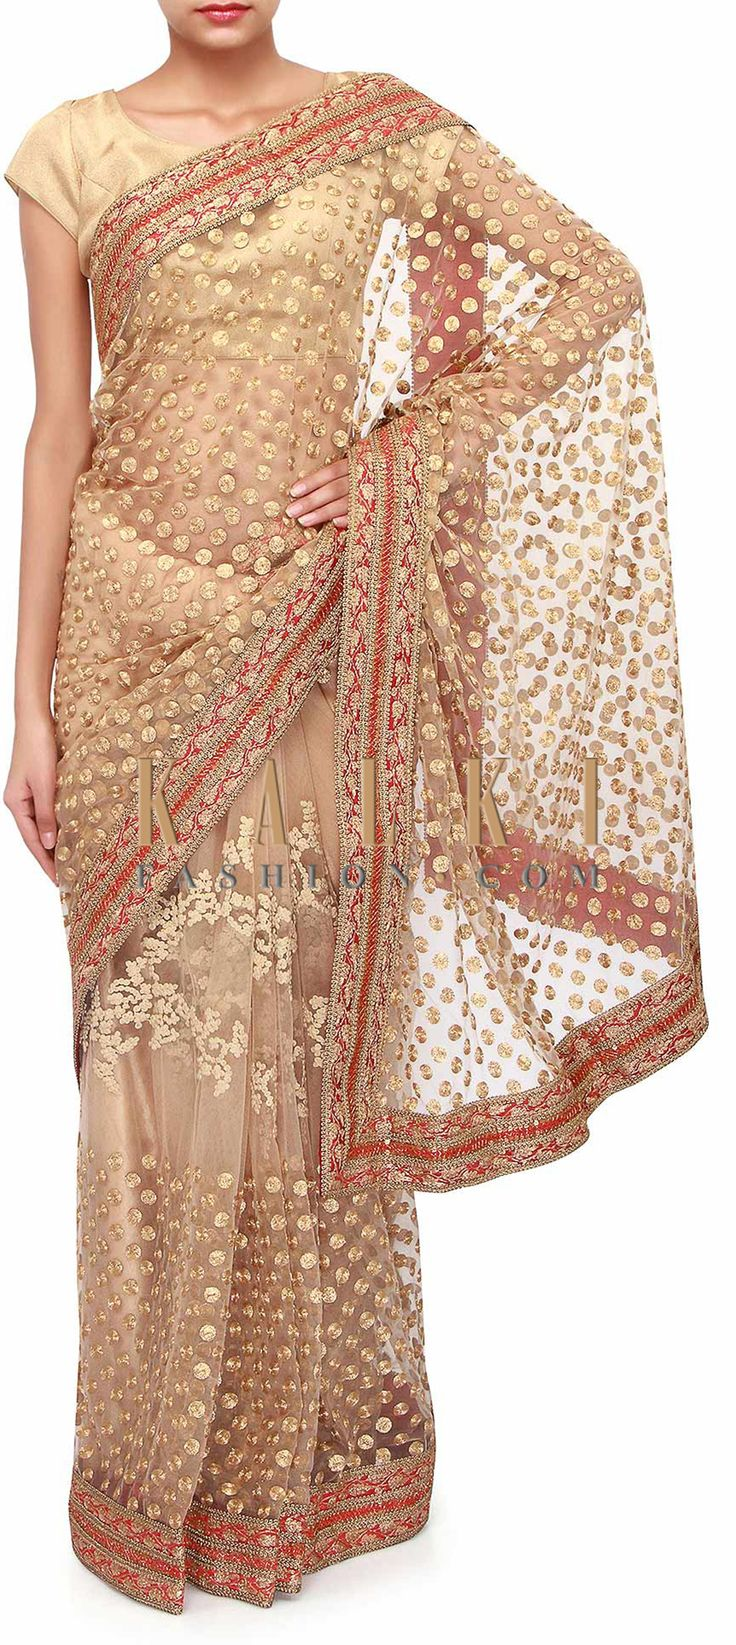 Buy Online from the link below. We ship worldwide (Free Shipping over US$100). Product SKU - 273503. Product Link - http://www.kalkifashion.com/beige-saree-adorn-in-thread-and-zari-embroidery-only-on-kalki.html